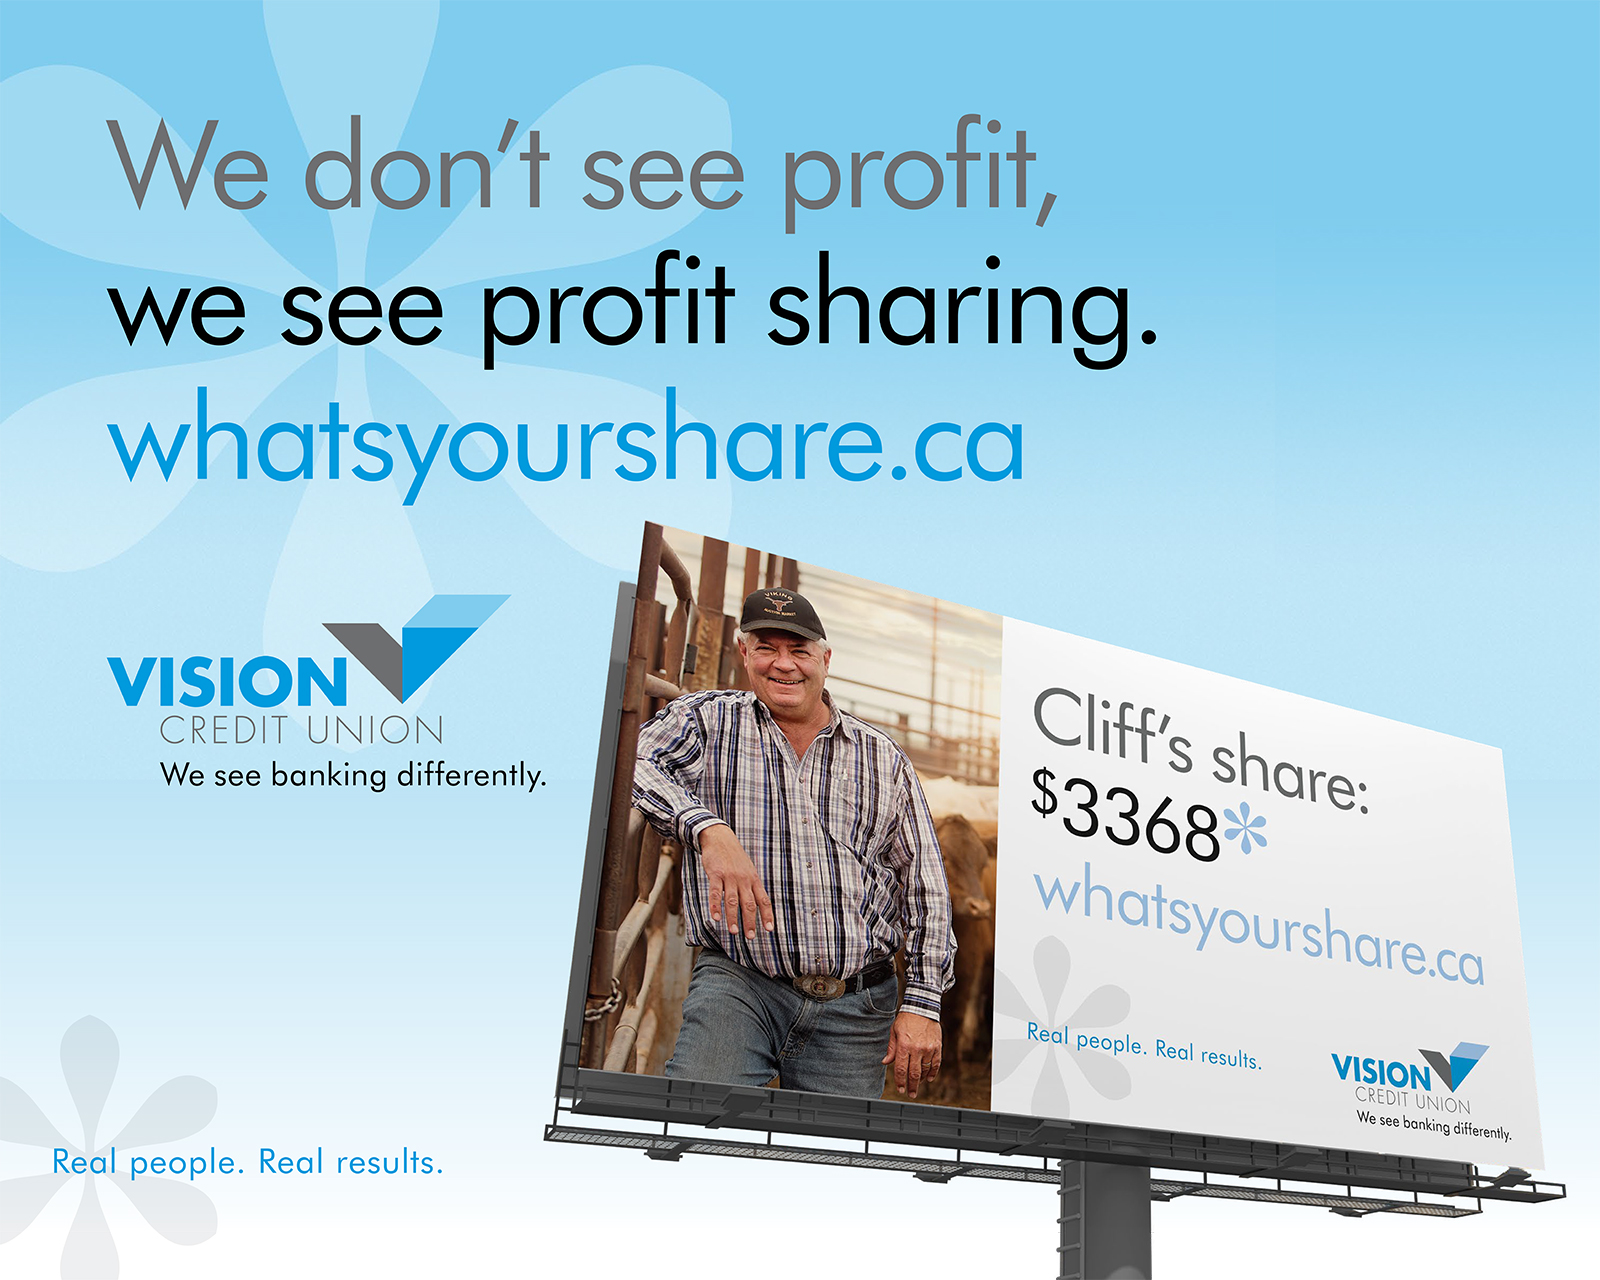 Billboard of an older man, wearing plaid and a ballcap showing how much he has received in profit sharing from Vision Credit Union.